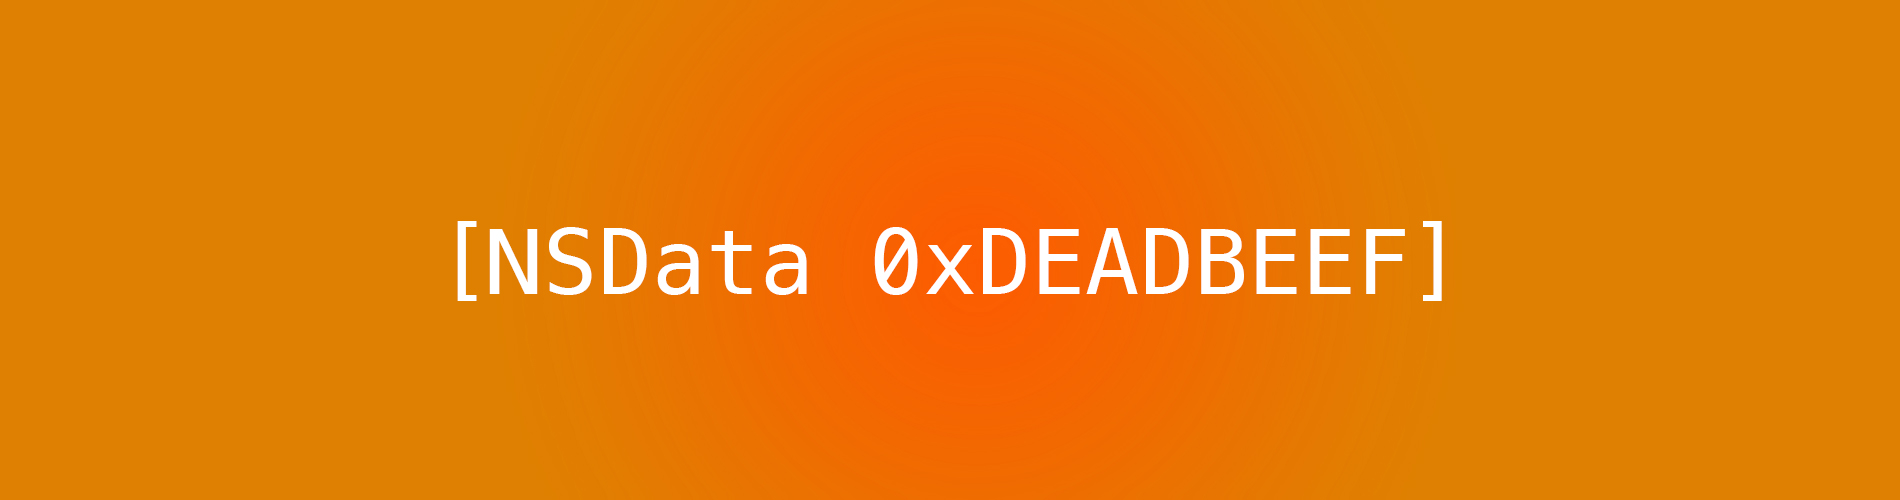 NSData as hexadecimal string feature image